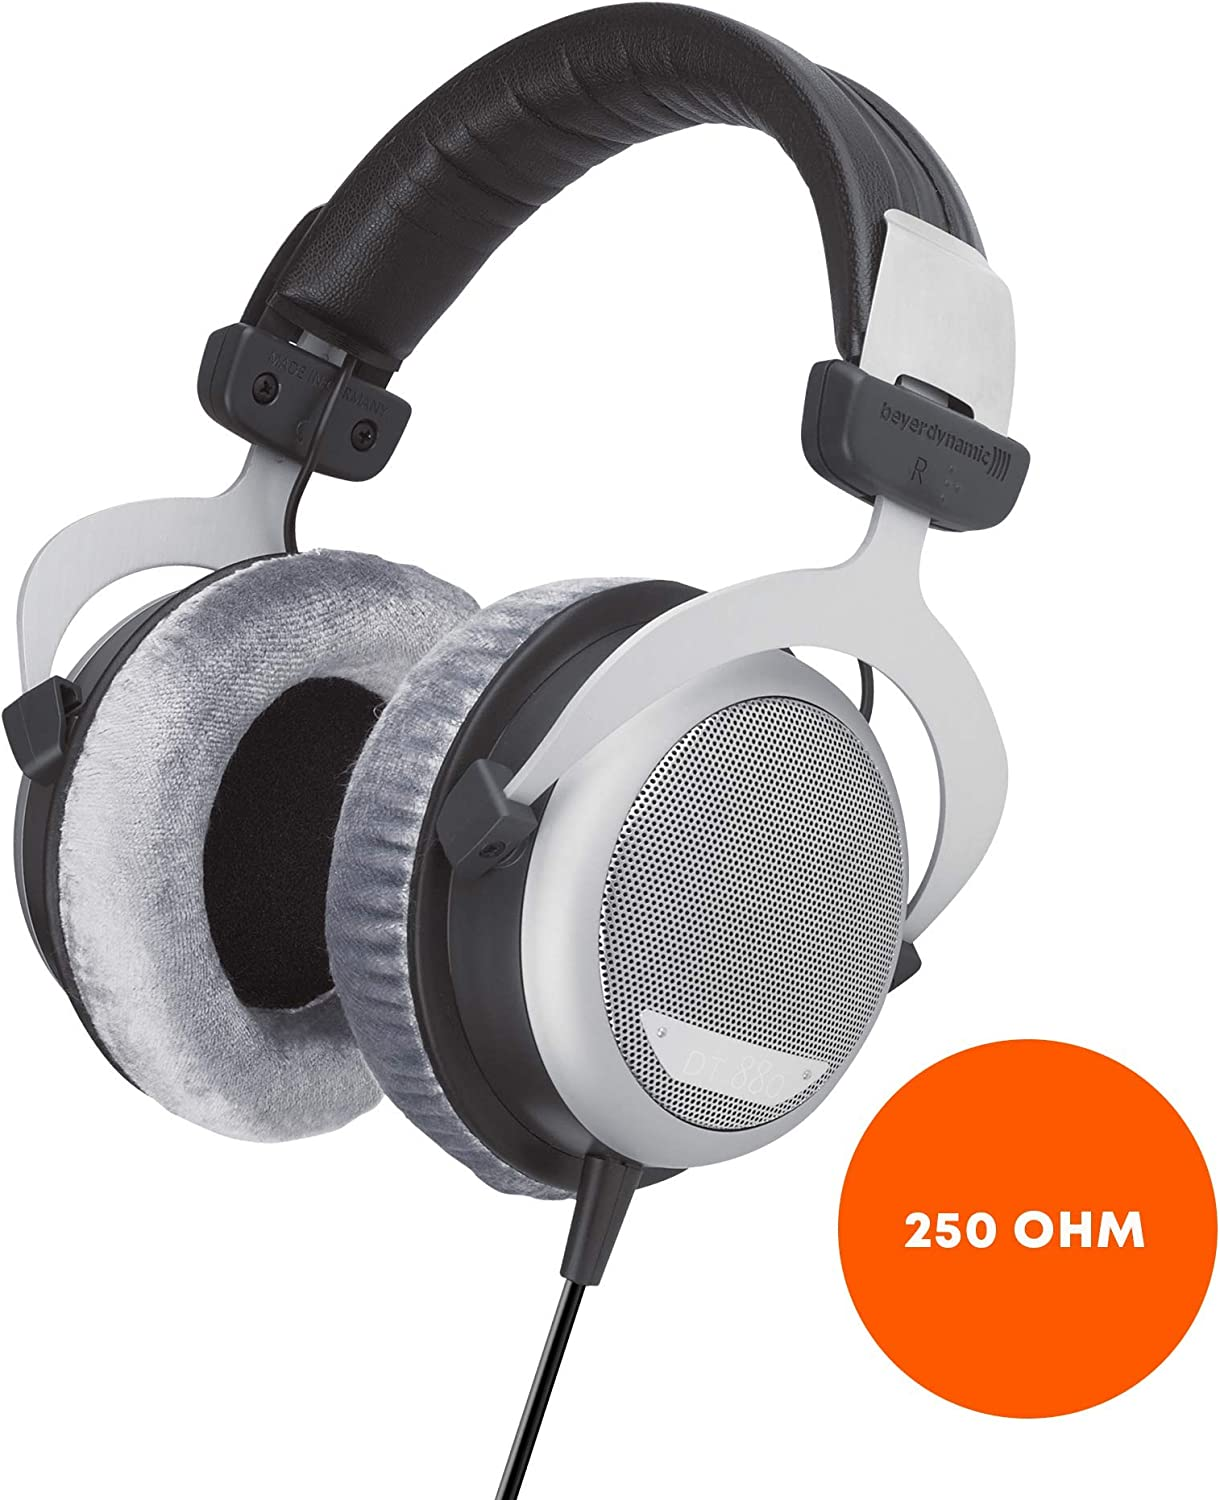 10 Best Headphones For Classical Music Lover's Like Me 4